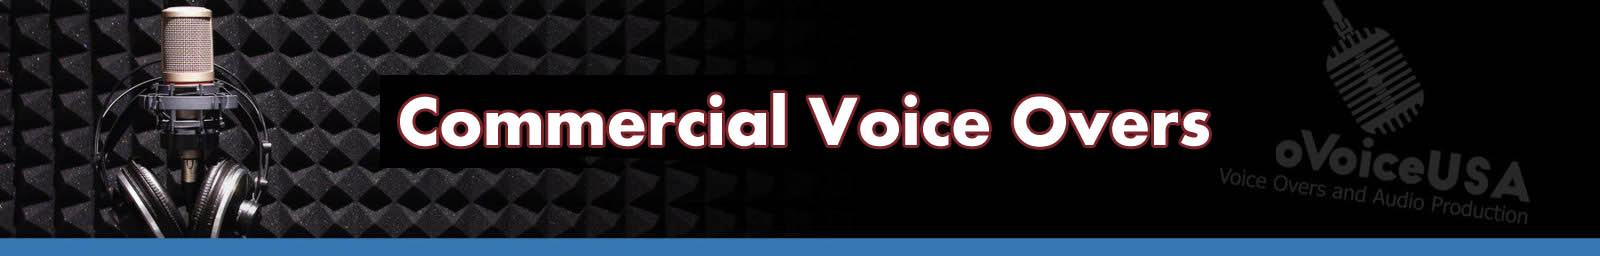 Commercial Voice Overs | American Voice Recording Service | ProVoice USA